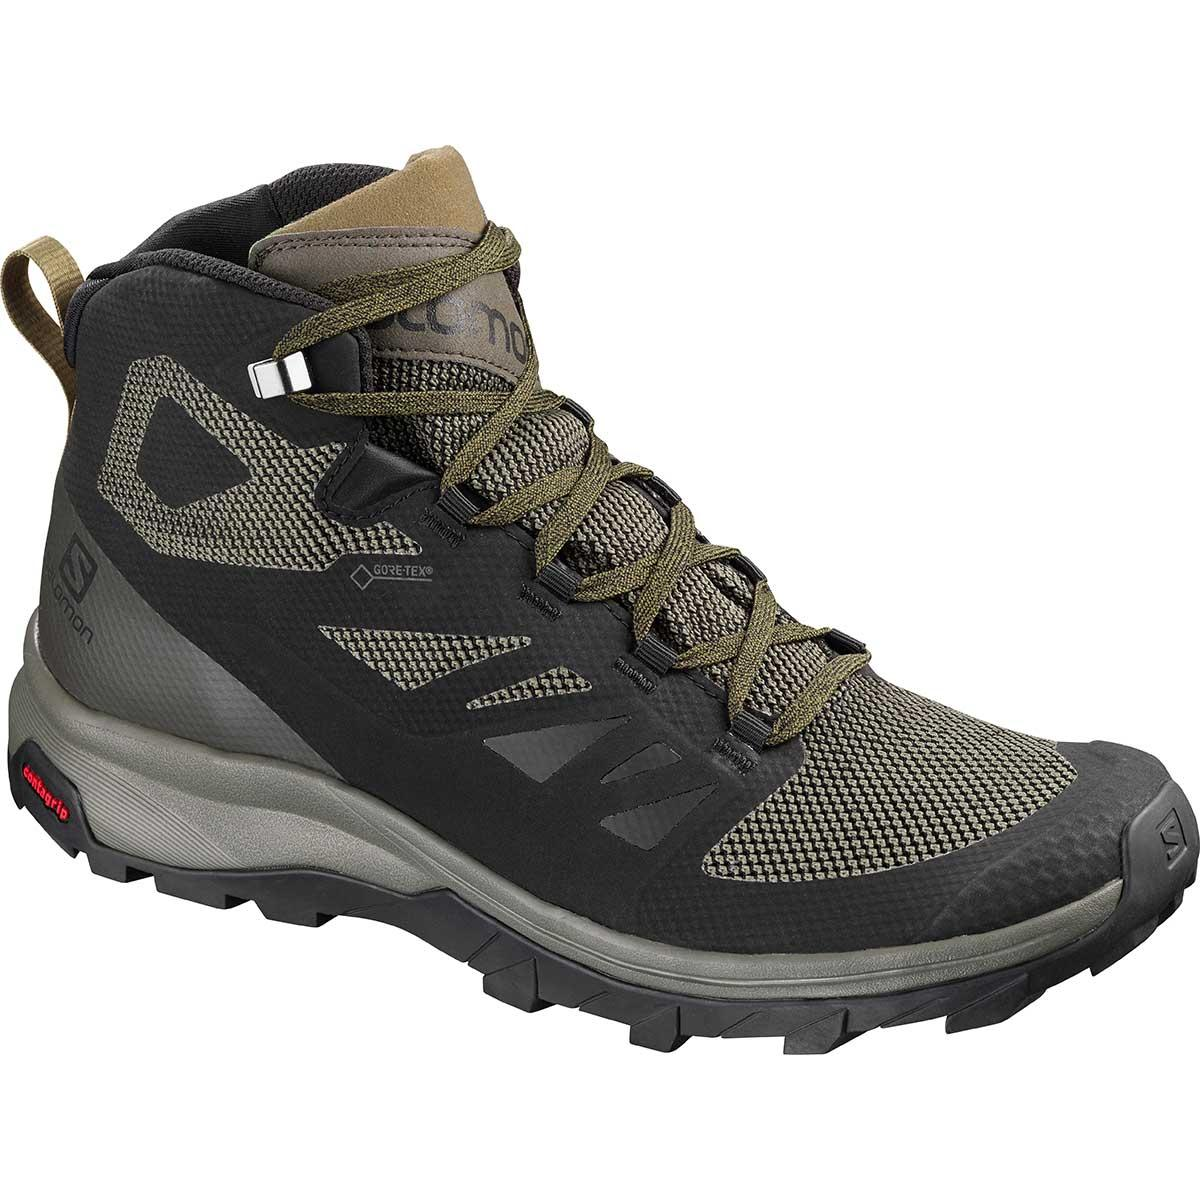 Salomon Outline Mid GTX in Black and Beluga